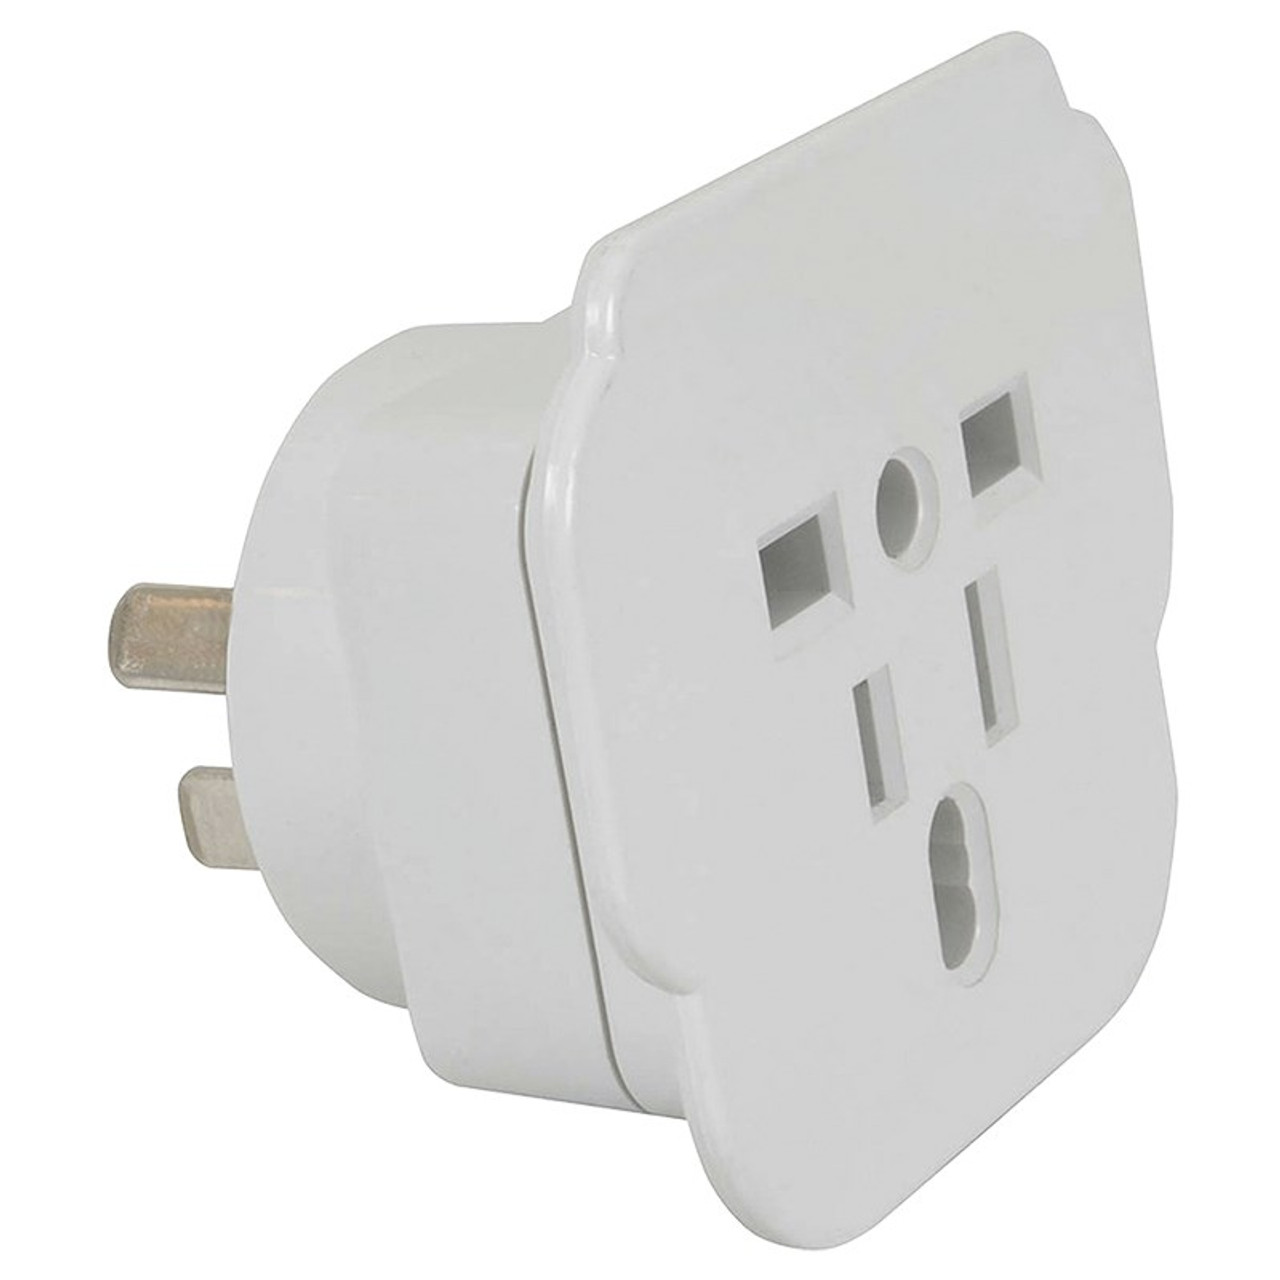 Image for Moki Universal to AU/NZ Travel Adaptor CX Computer Superstore